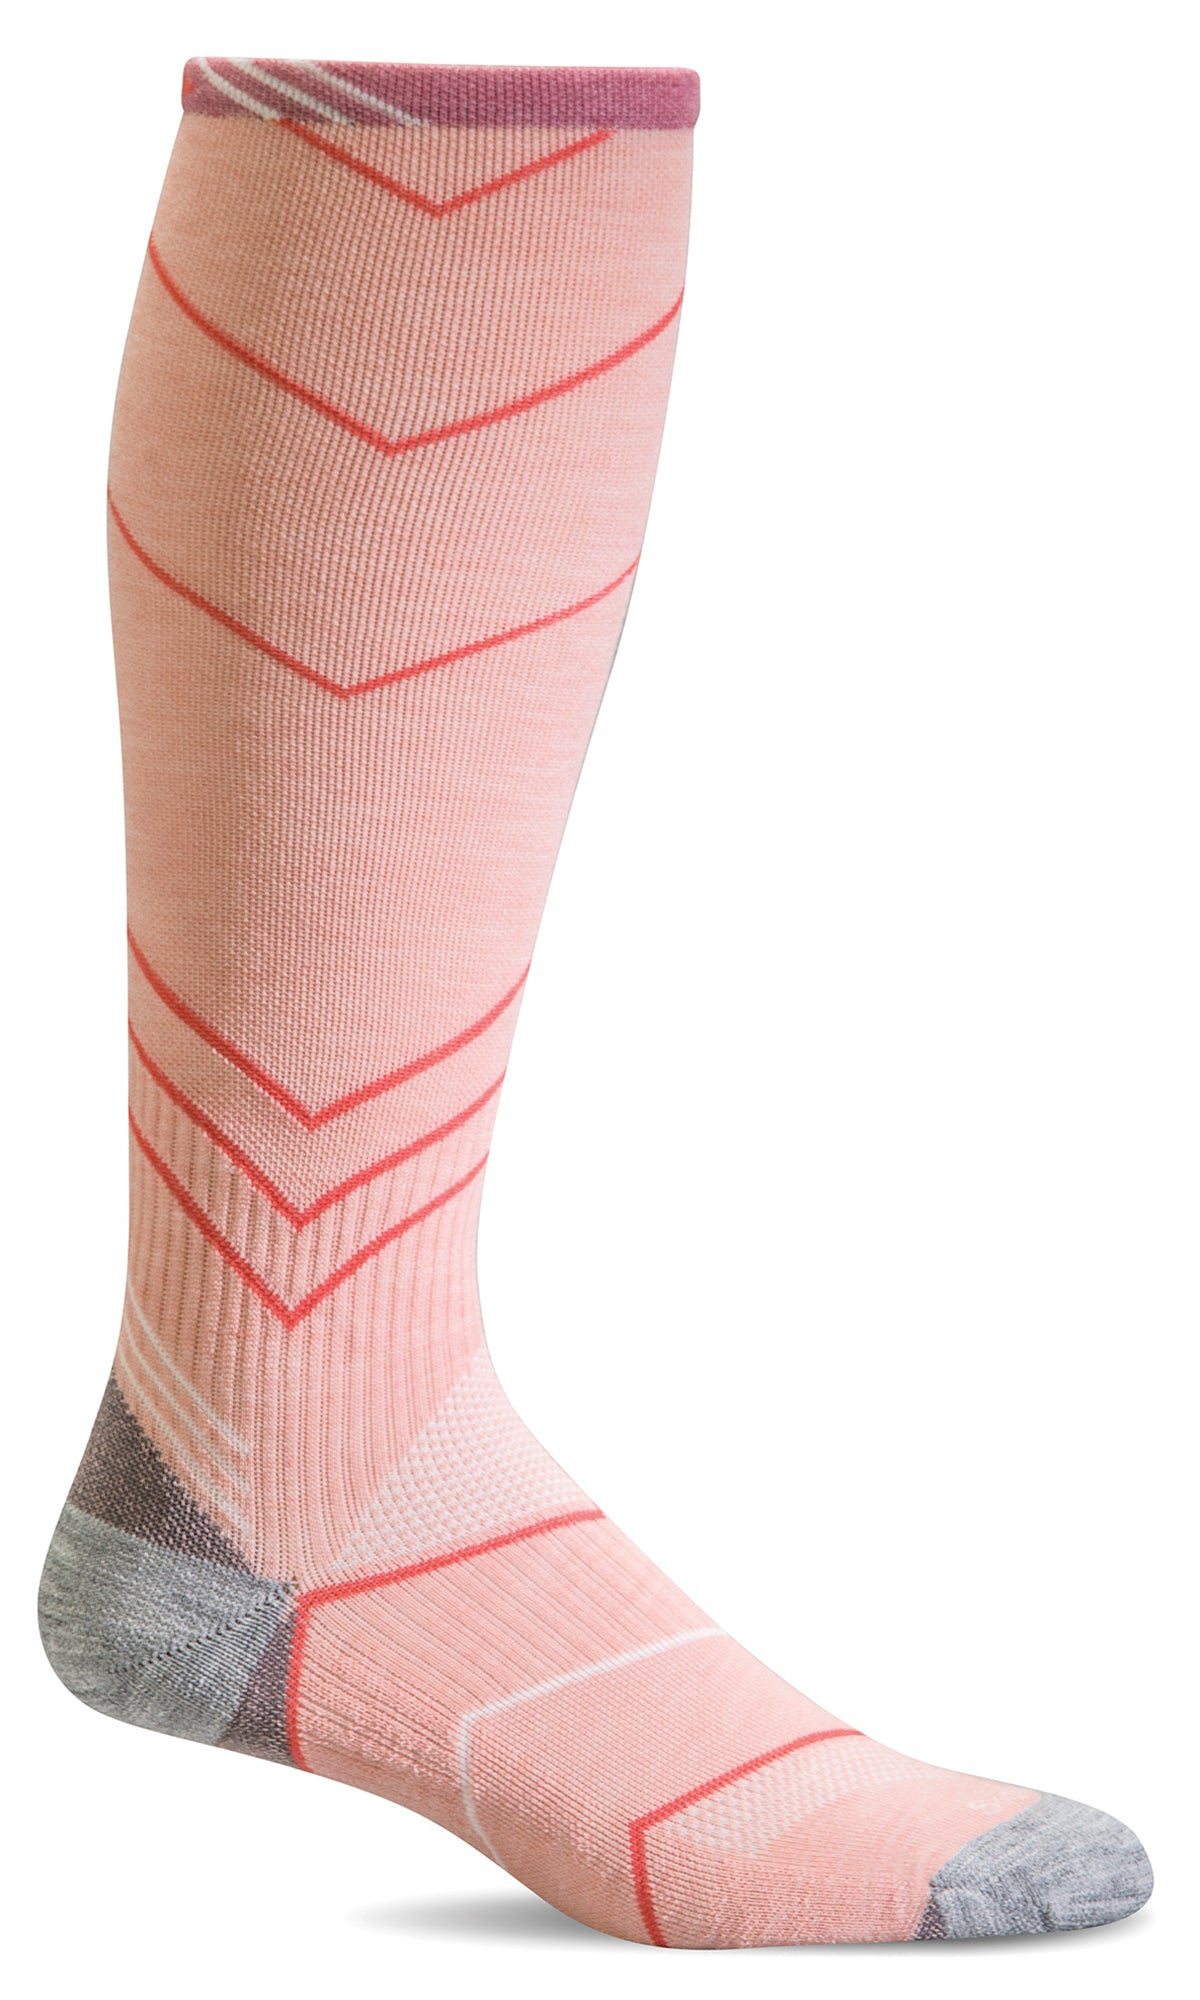 Incline Knee-High - Rose Moderate Compression (15-20mmHg)